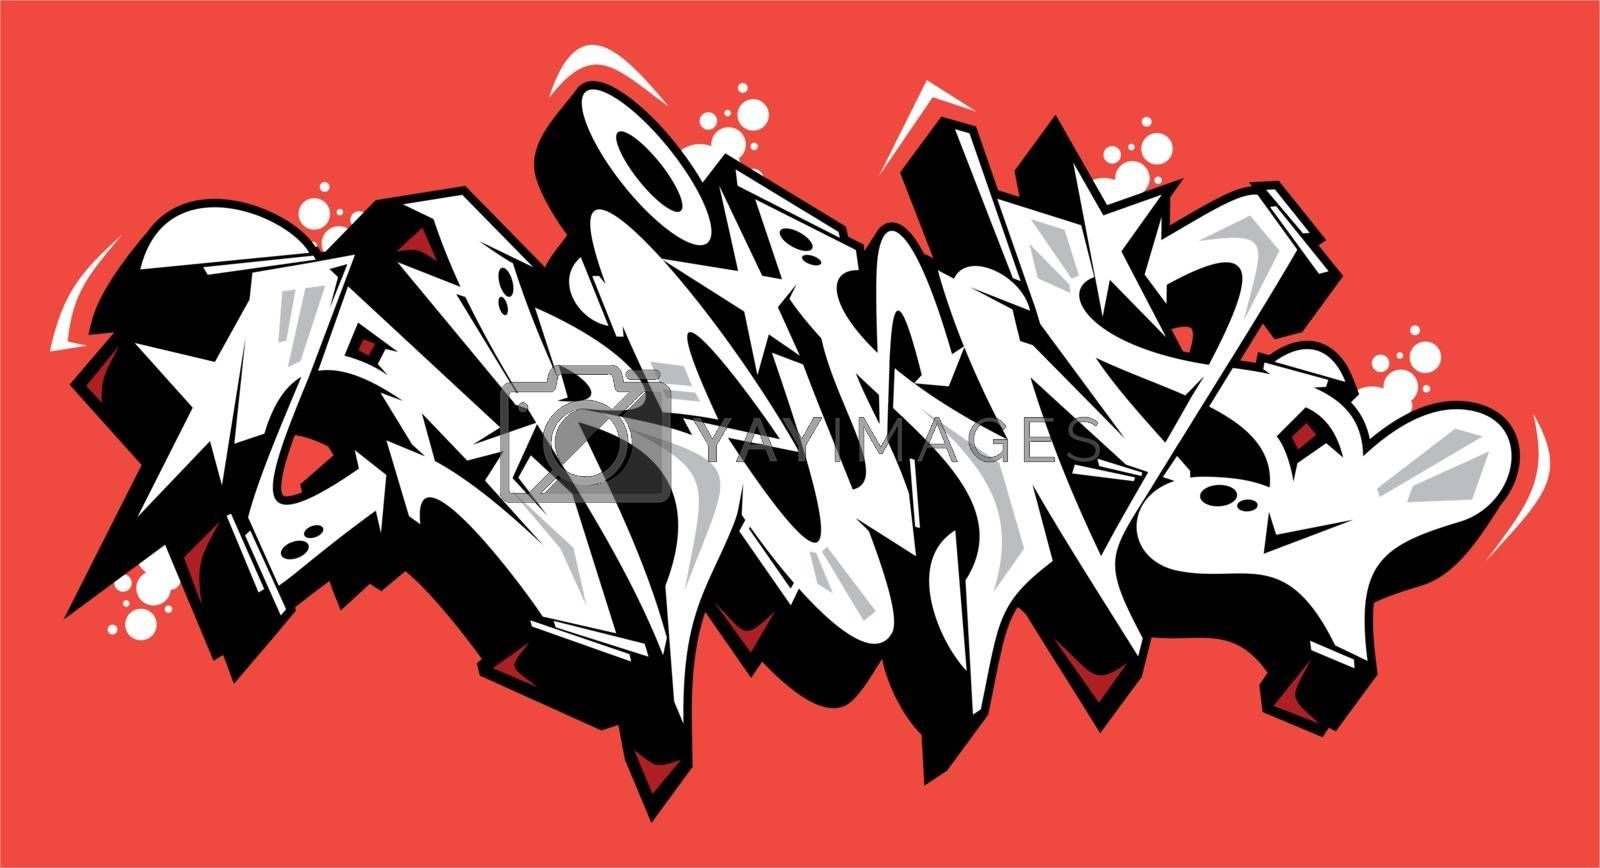 Dream Graffiti Font Lettering With A Red Background